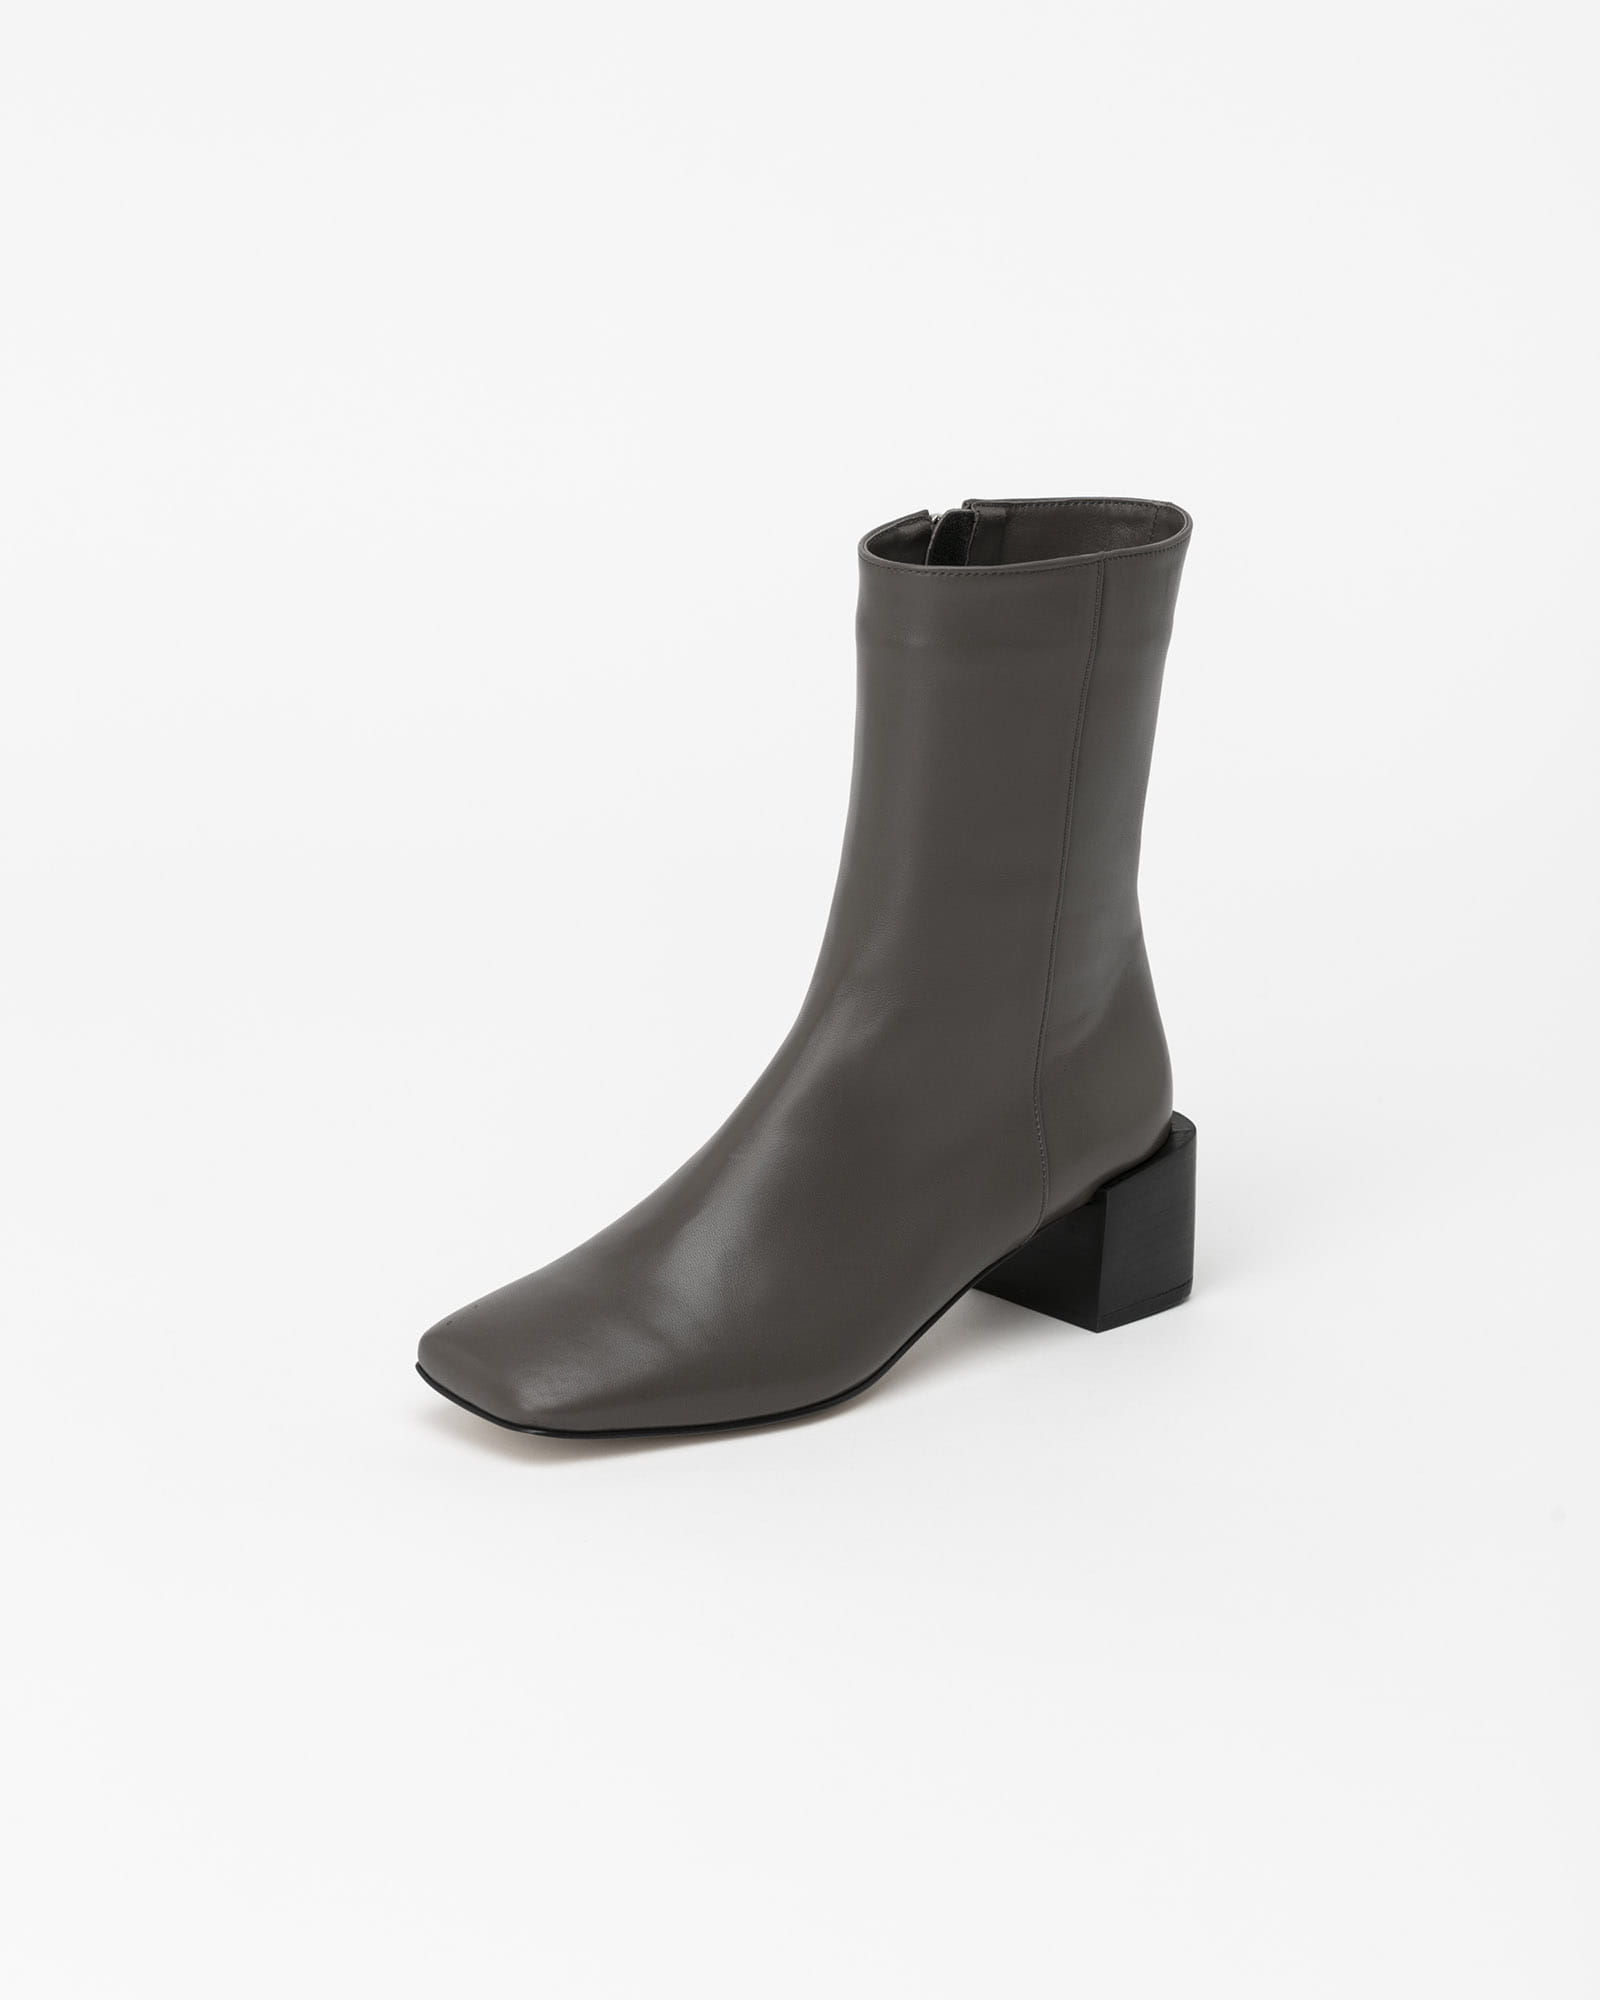 Carlotte Boots in Solid Gray